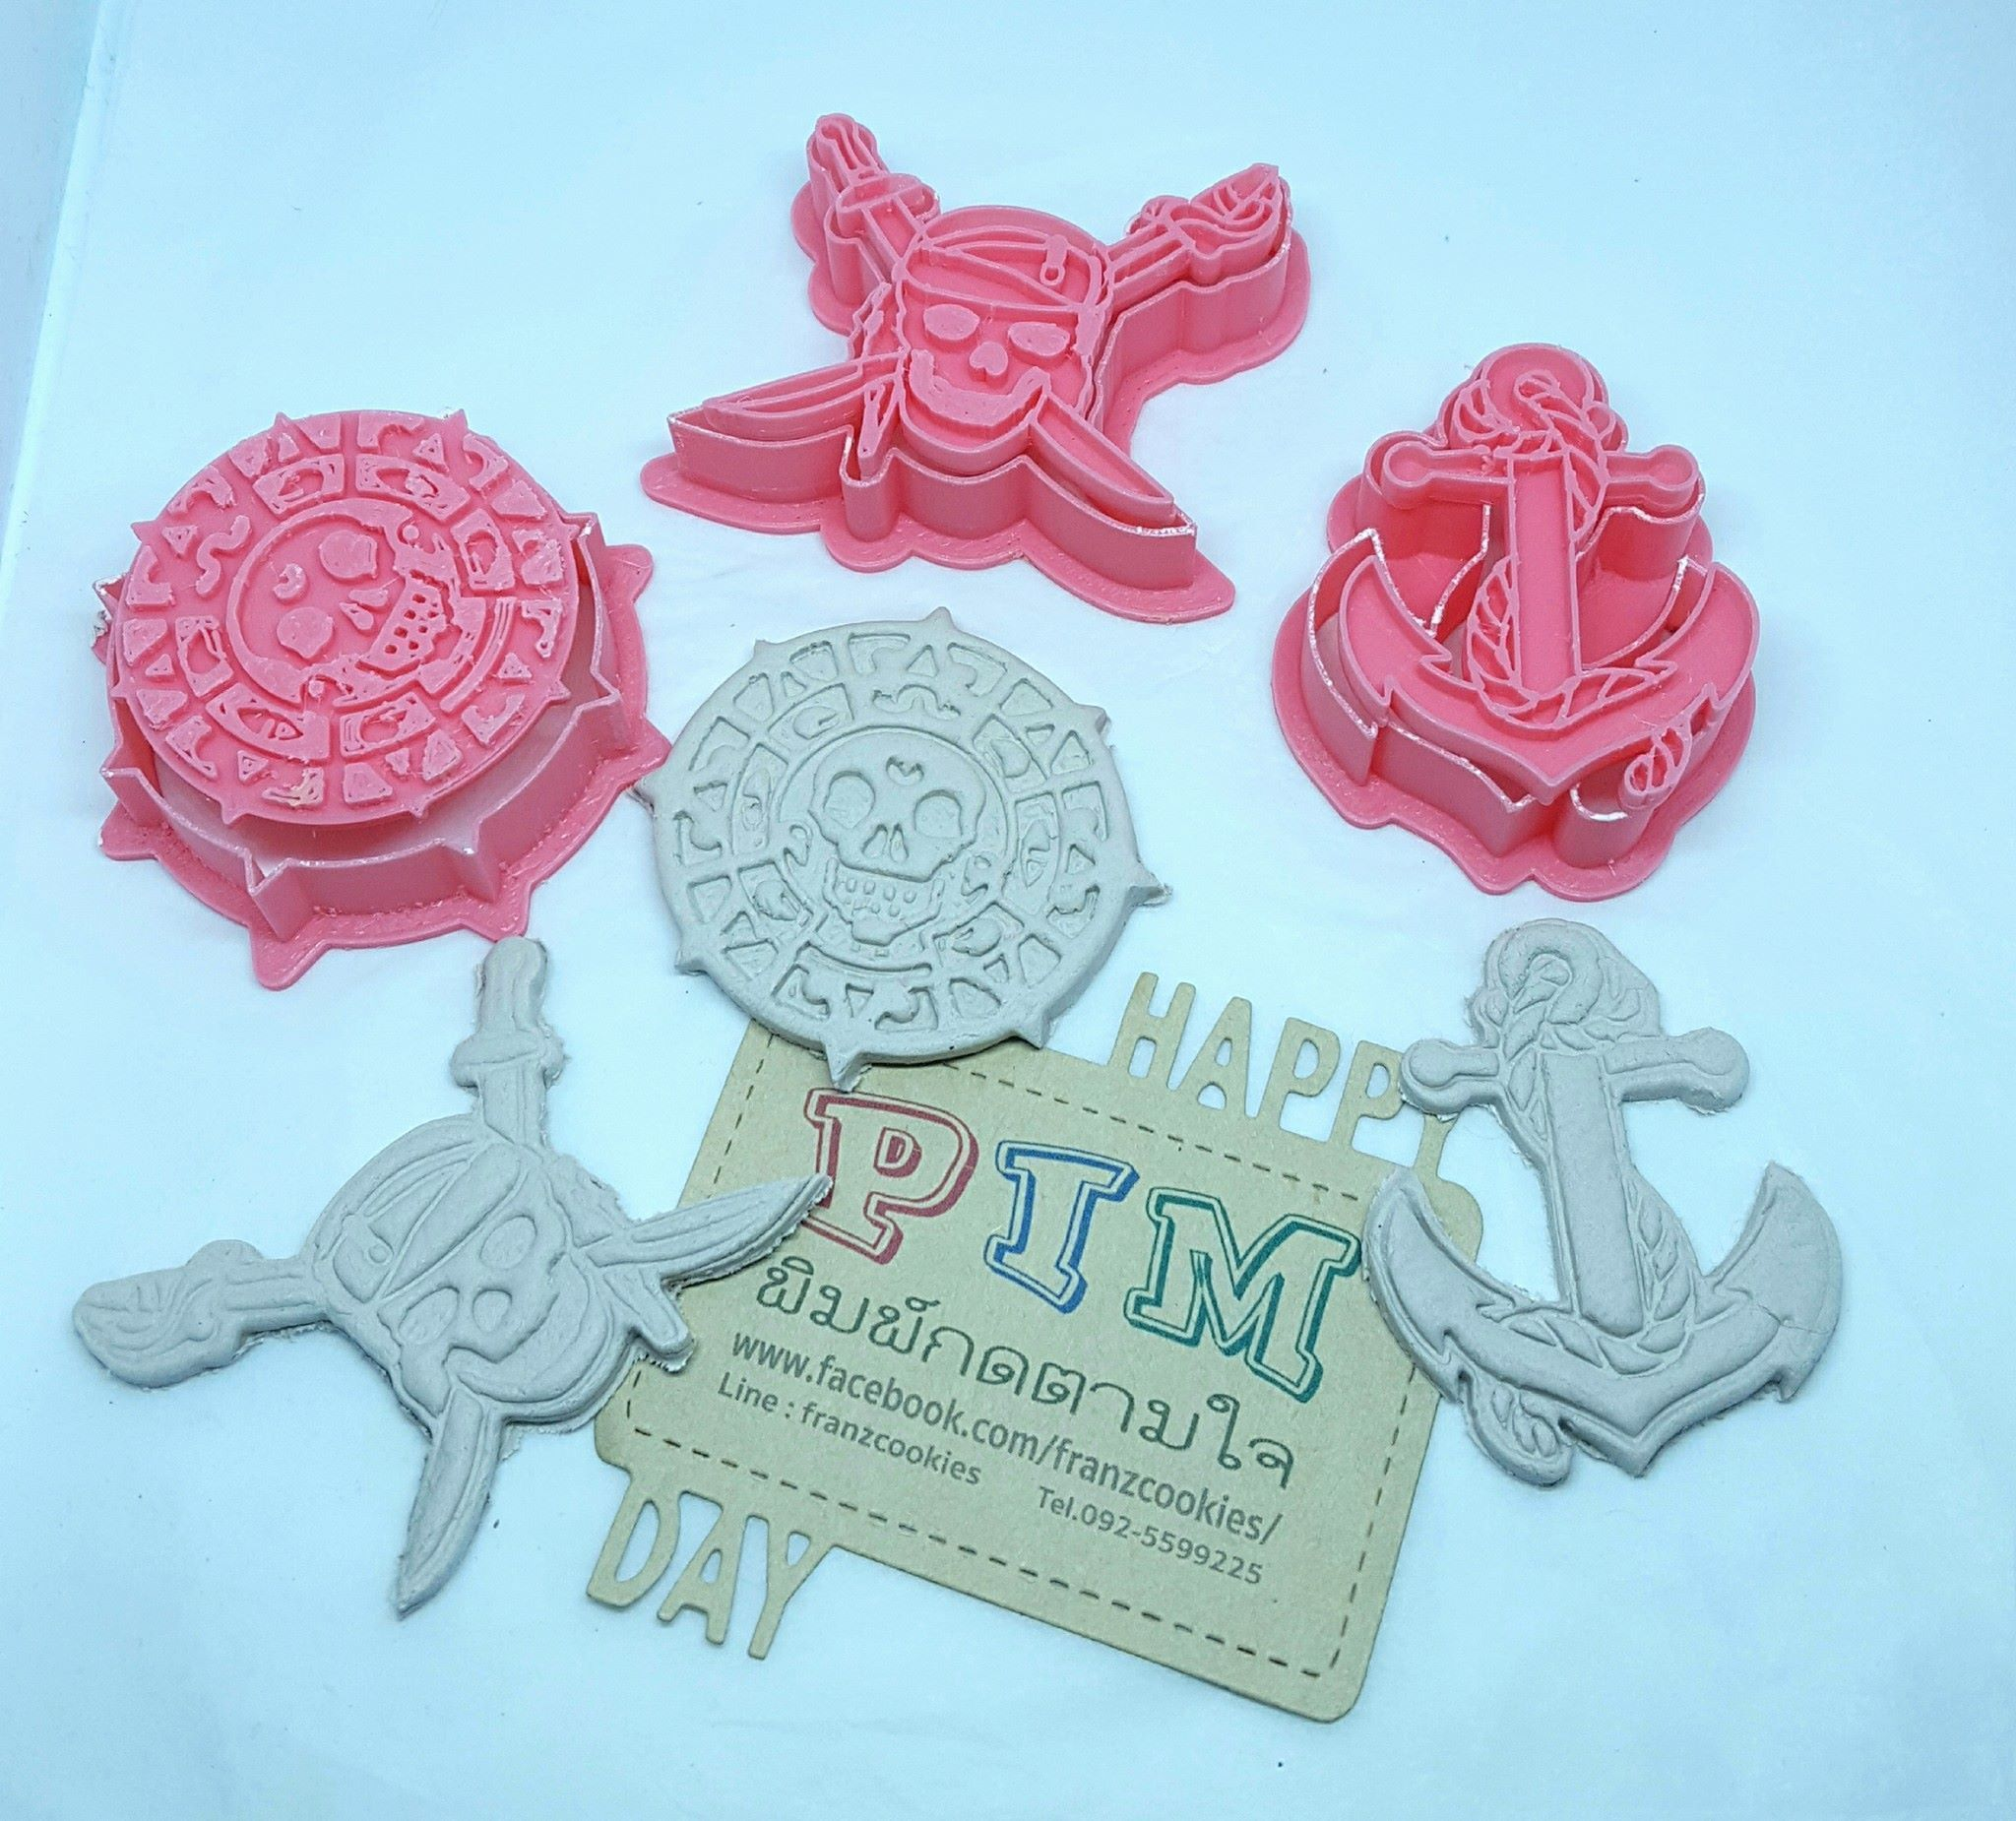 Pirates of the Caribbean set cookie cutter with stamp